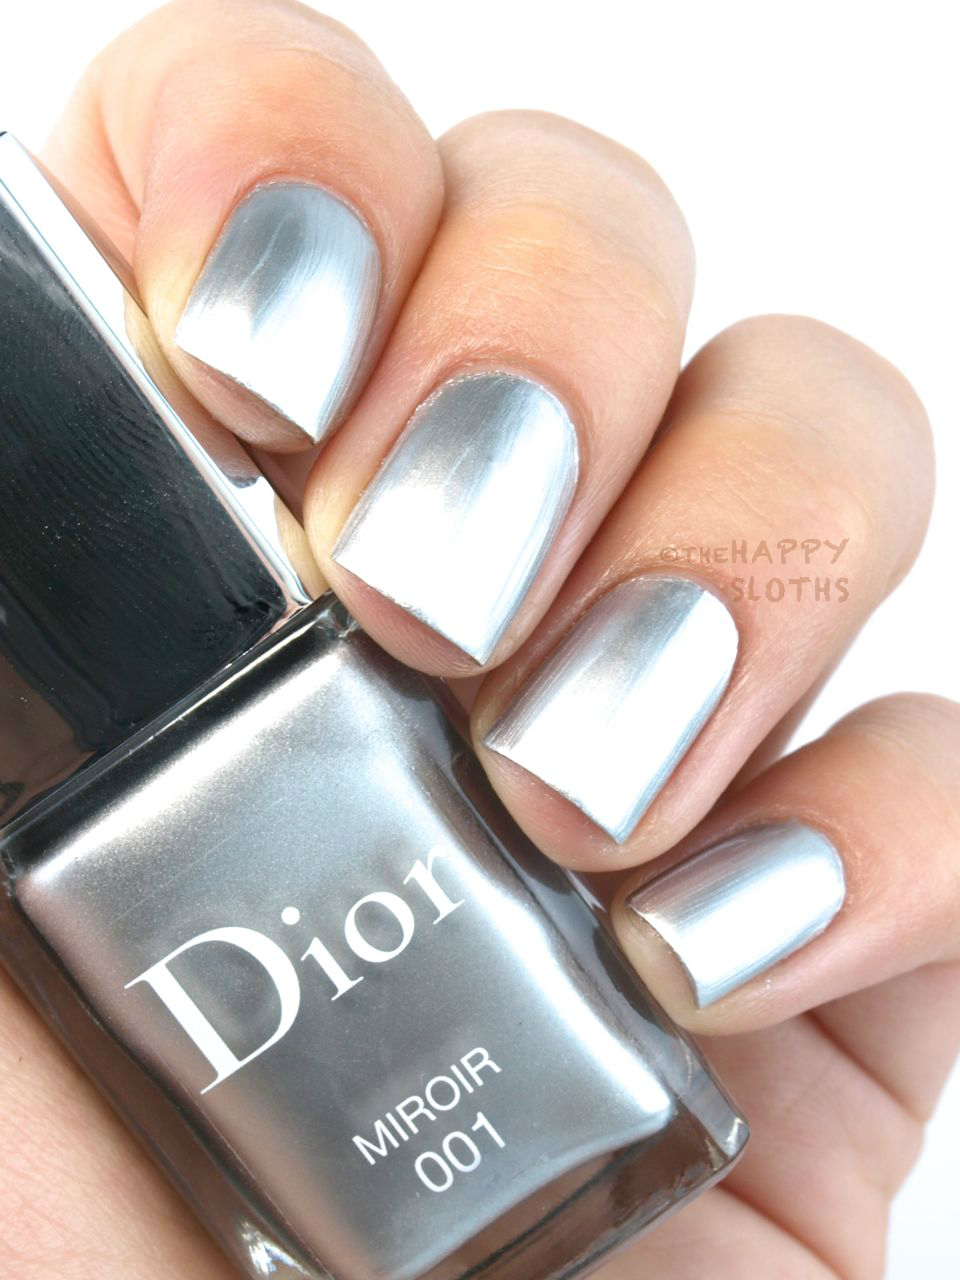 Dior fall 2015 dior vernis in 791 darling blue 001 for Collection miroir